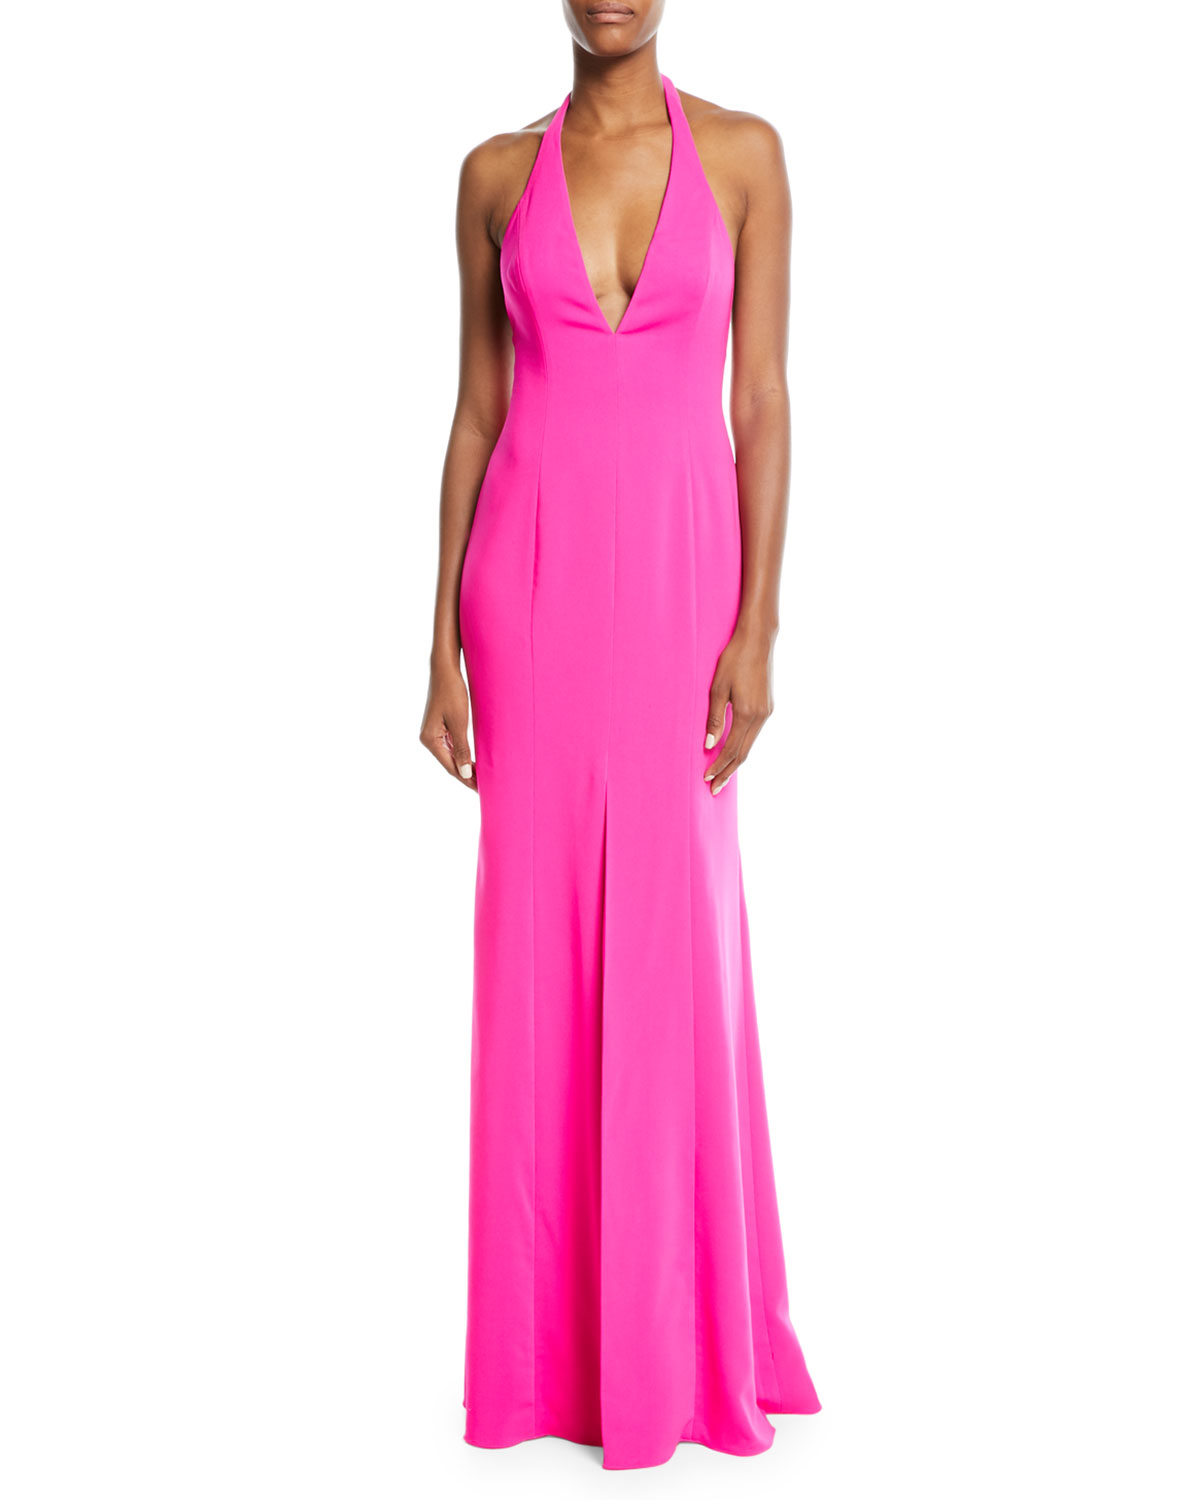 V- Neck Halter Dress